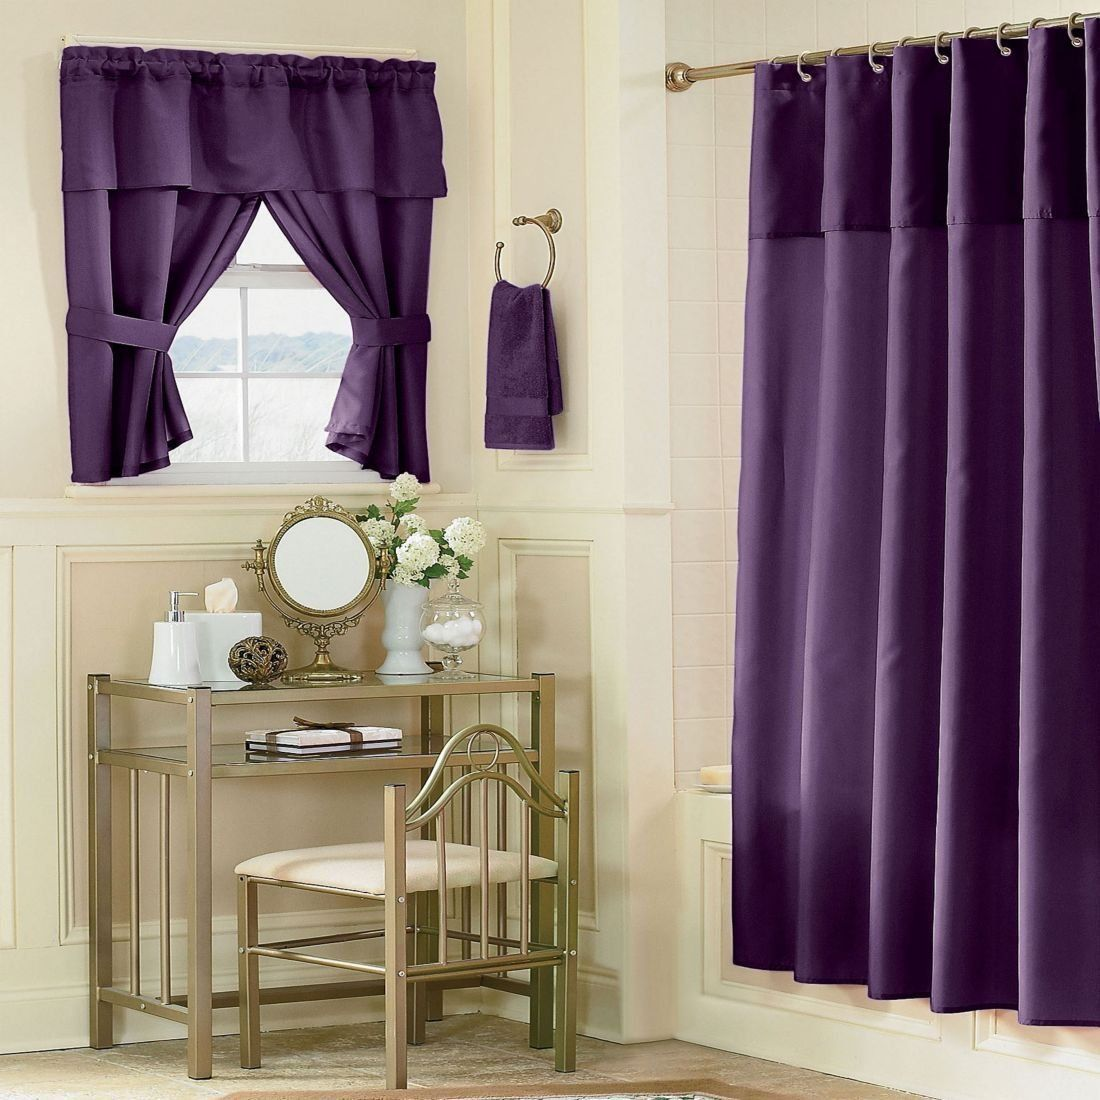 Lavender Bathroom Window Curtains